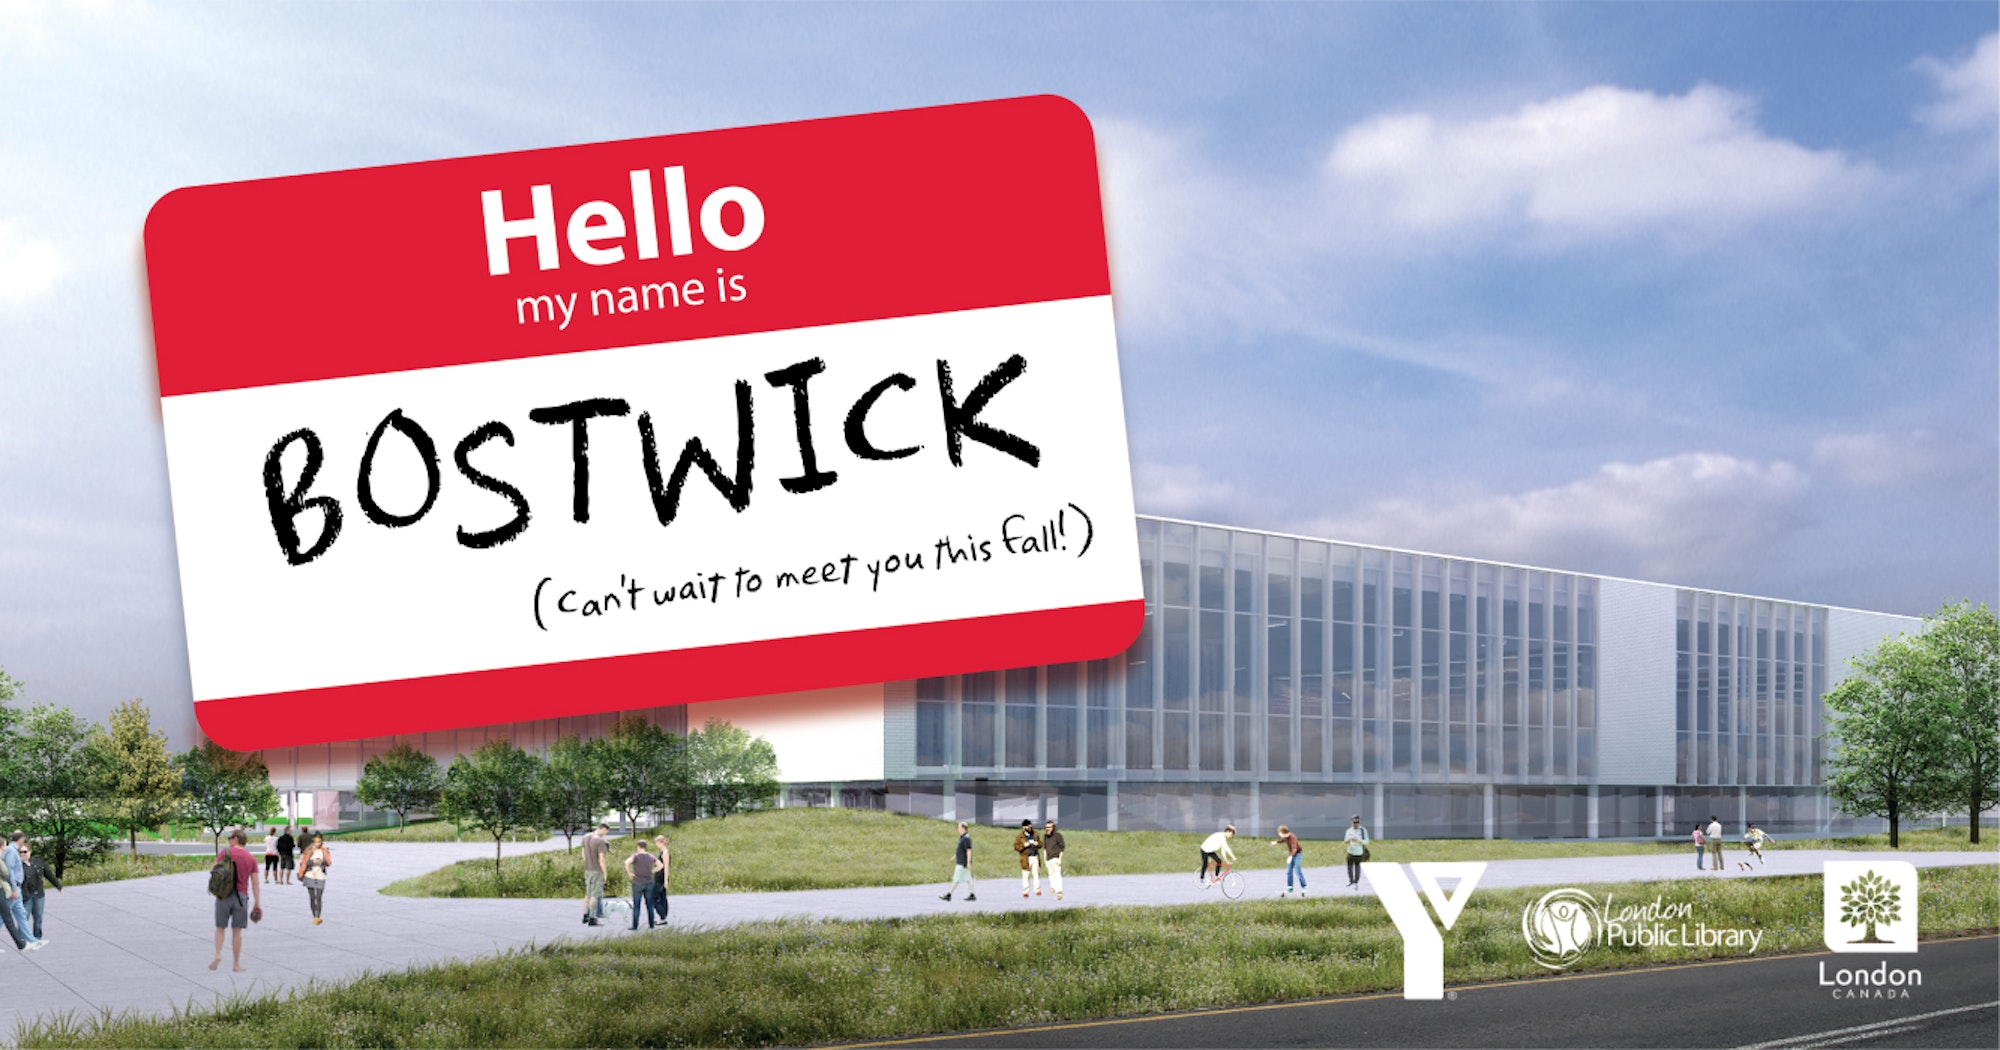 Picture of bostwick ymca with sticker reading hello my name is bostwick